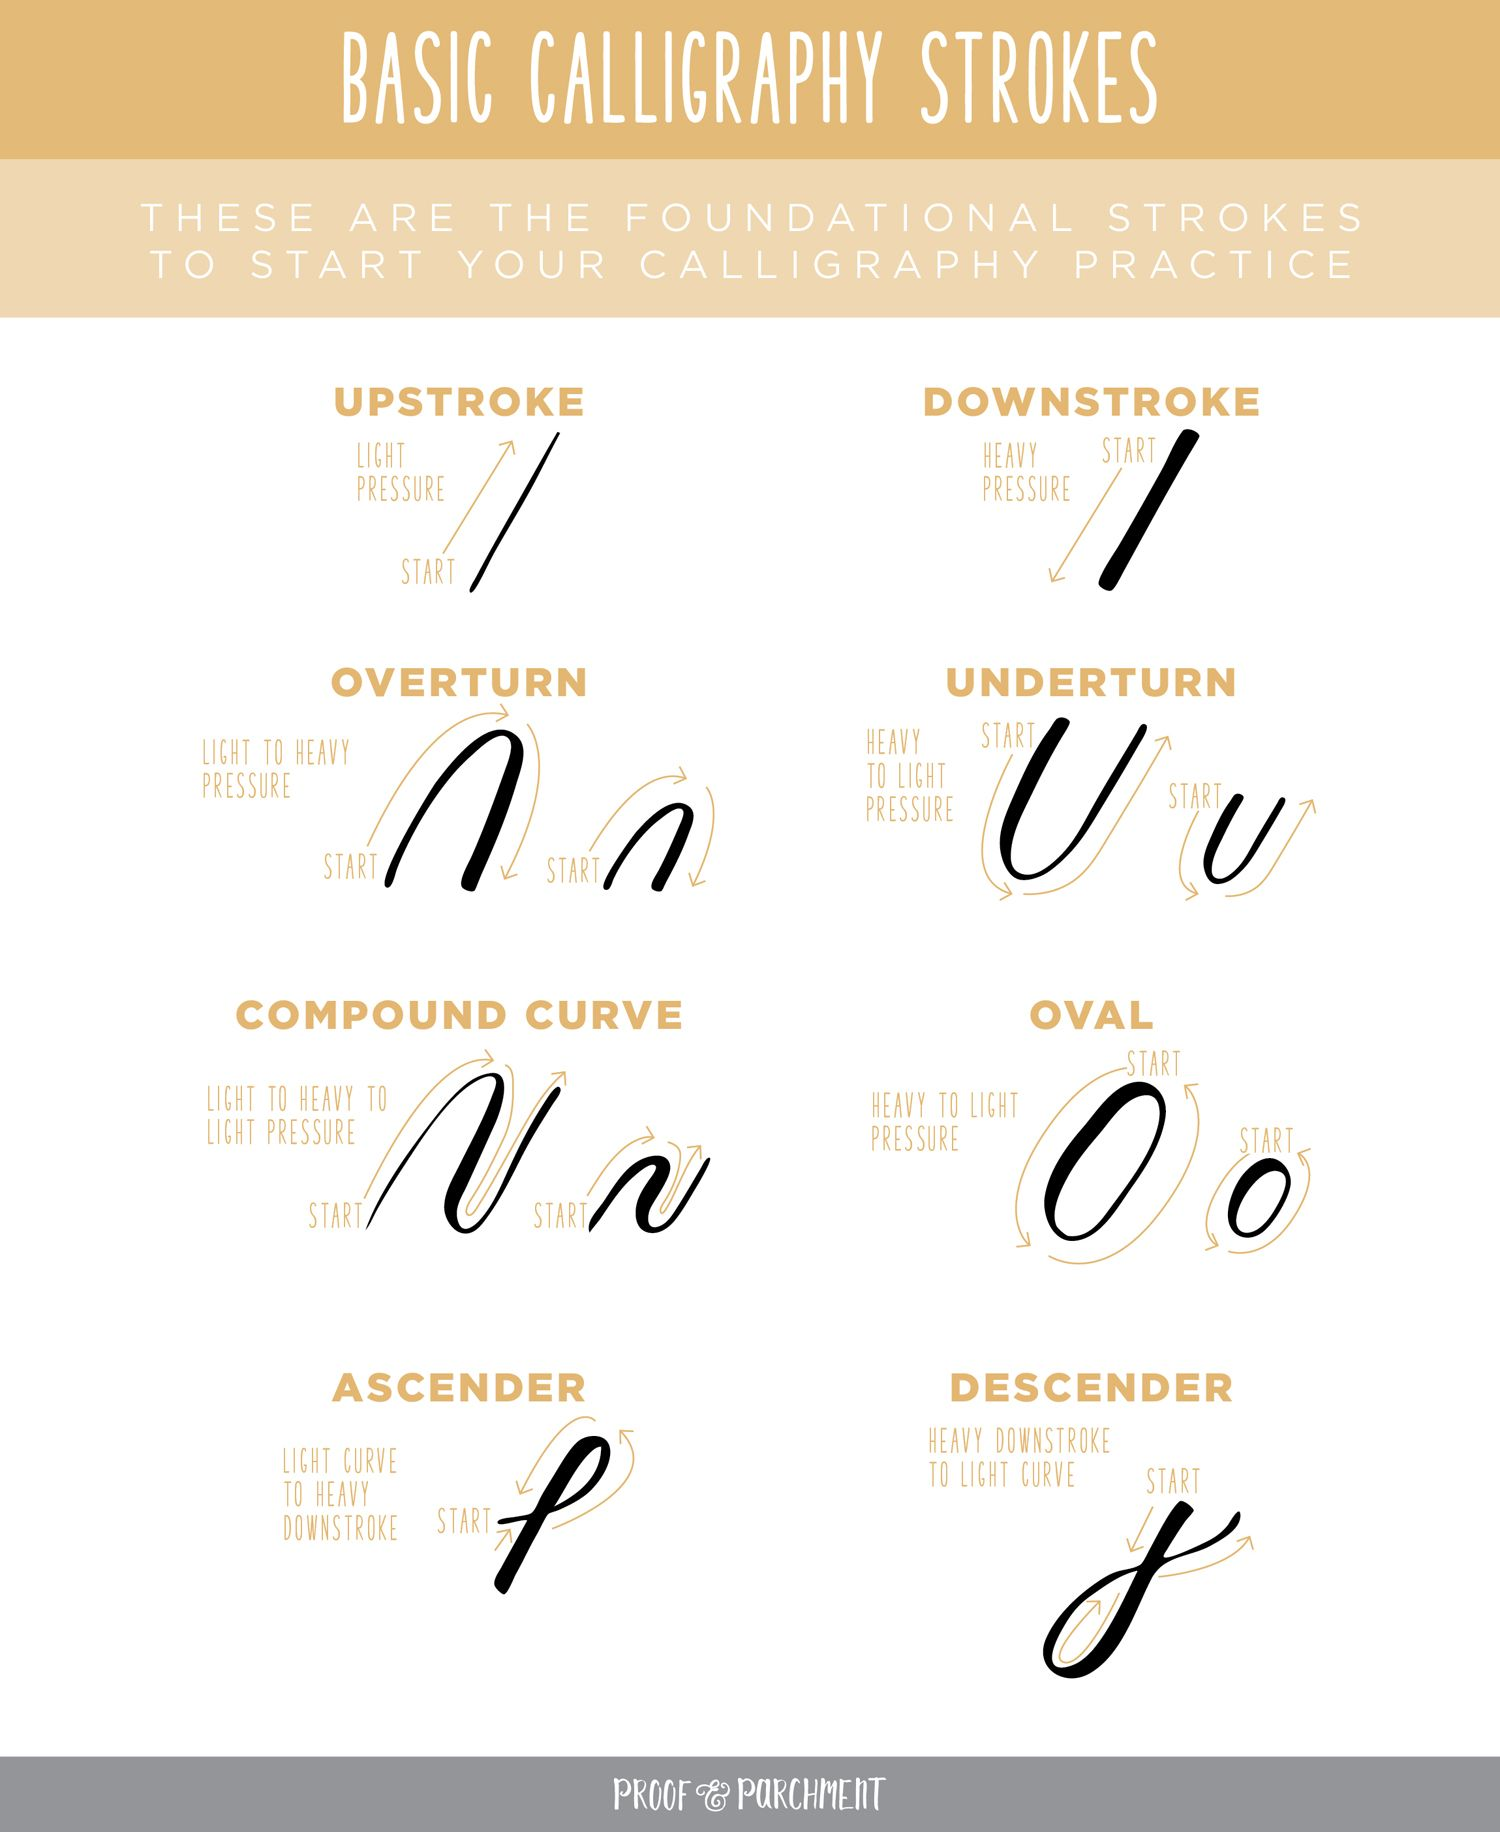 Learn Calligraphy Today Part 3 Basic Calligraphy Strokes